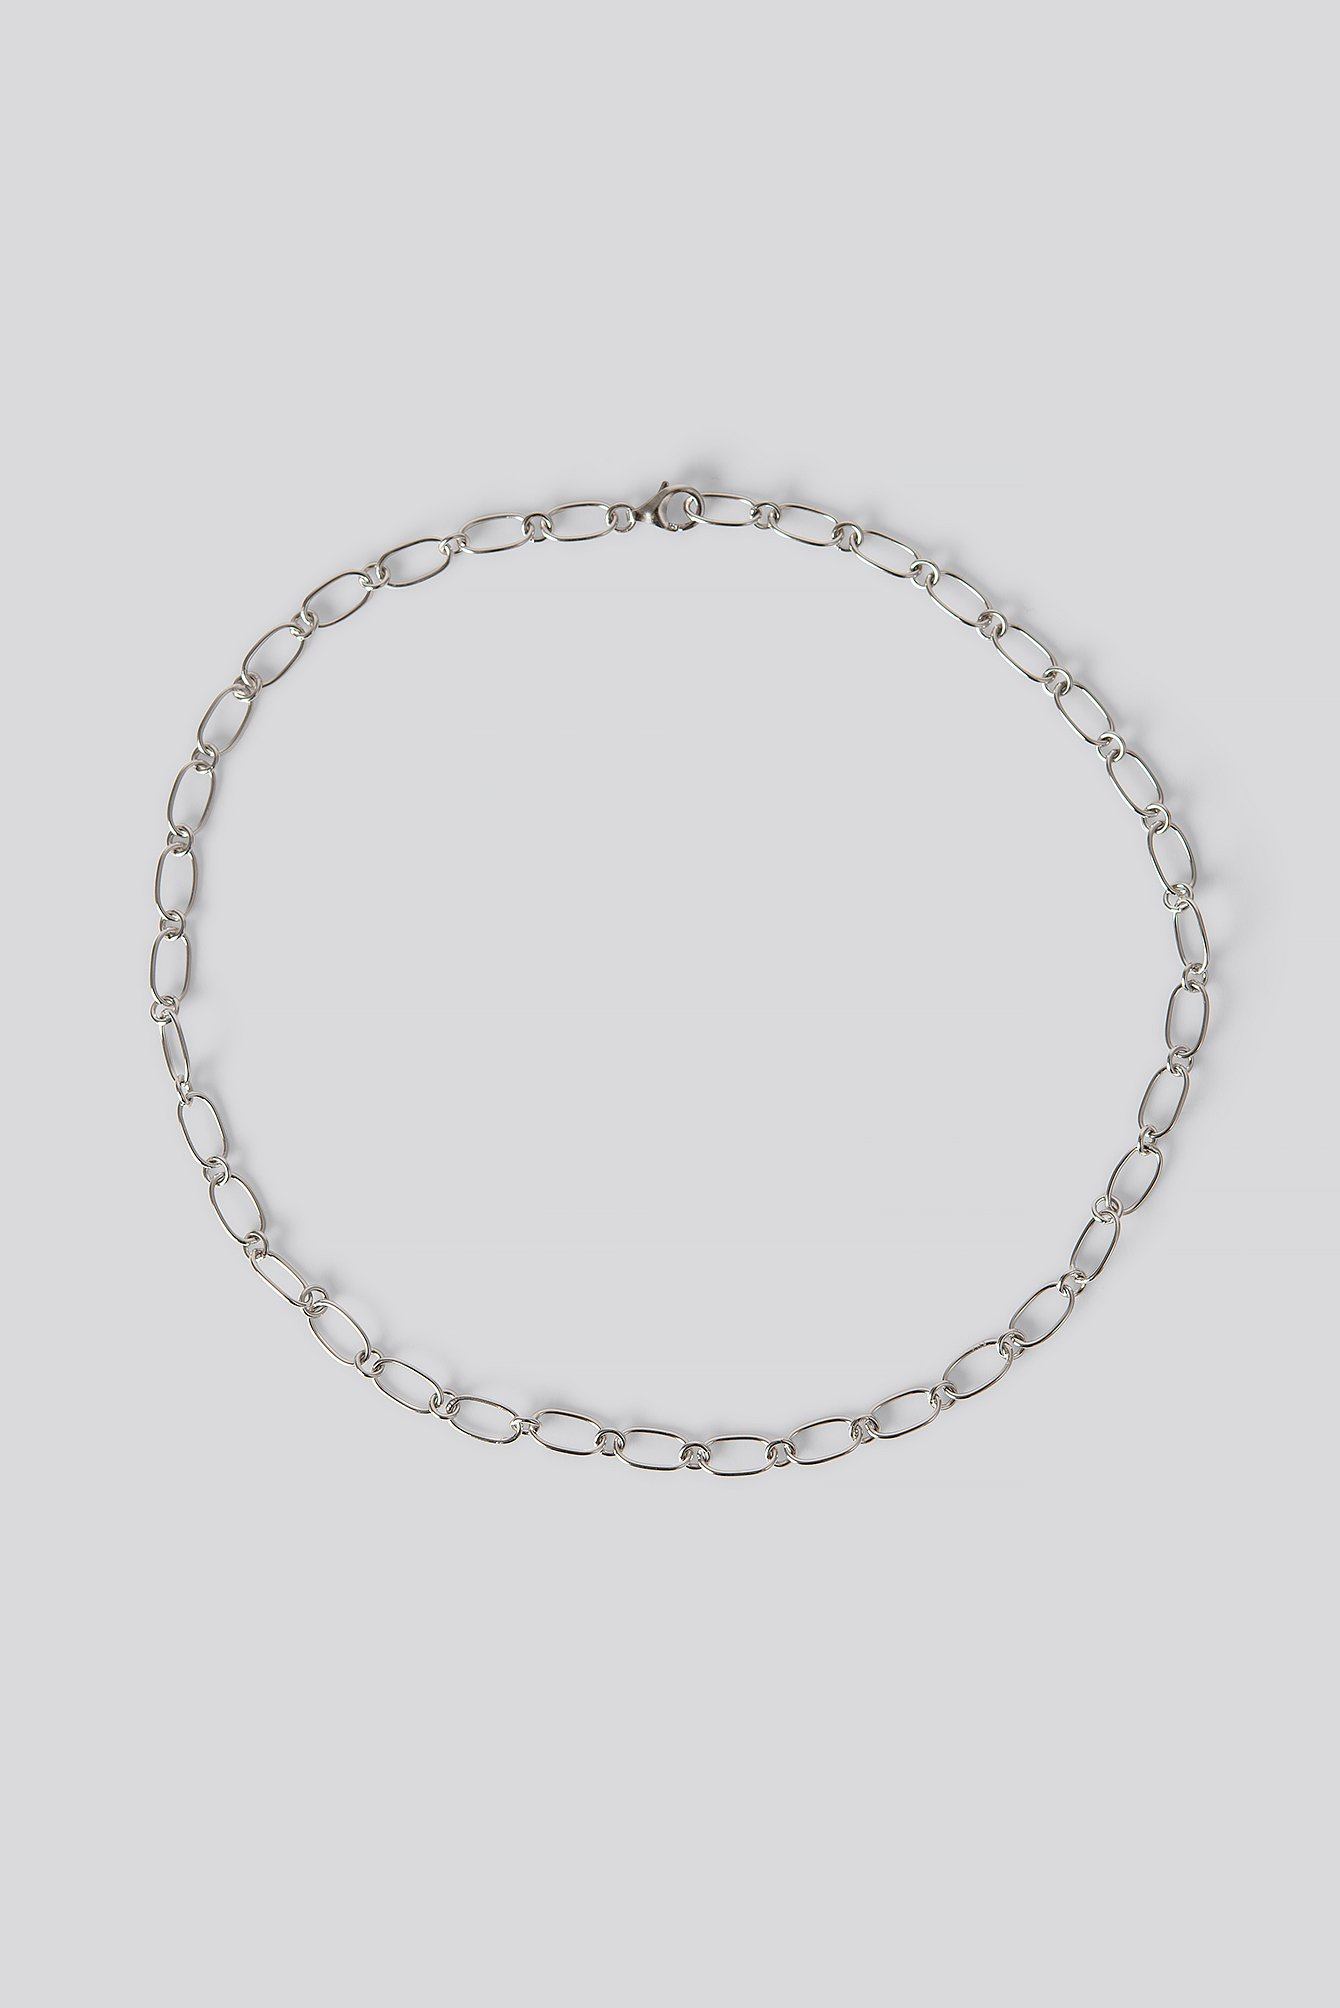 na-kd accessories -  Sterling Silver Thin Chain Necklace - Silver